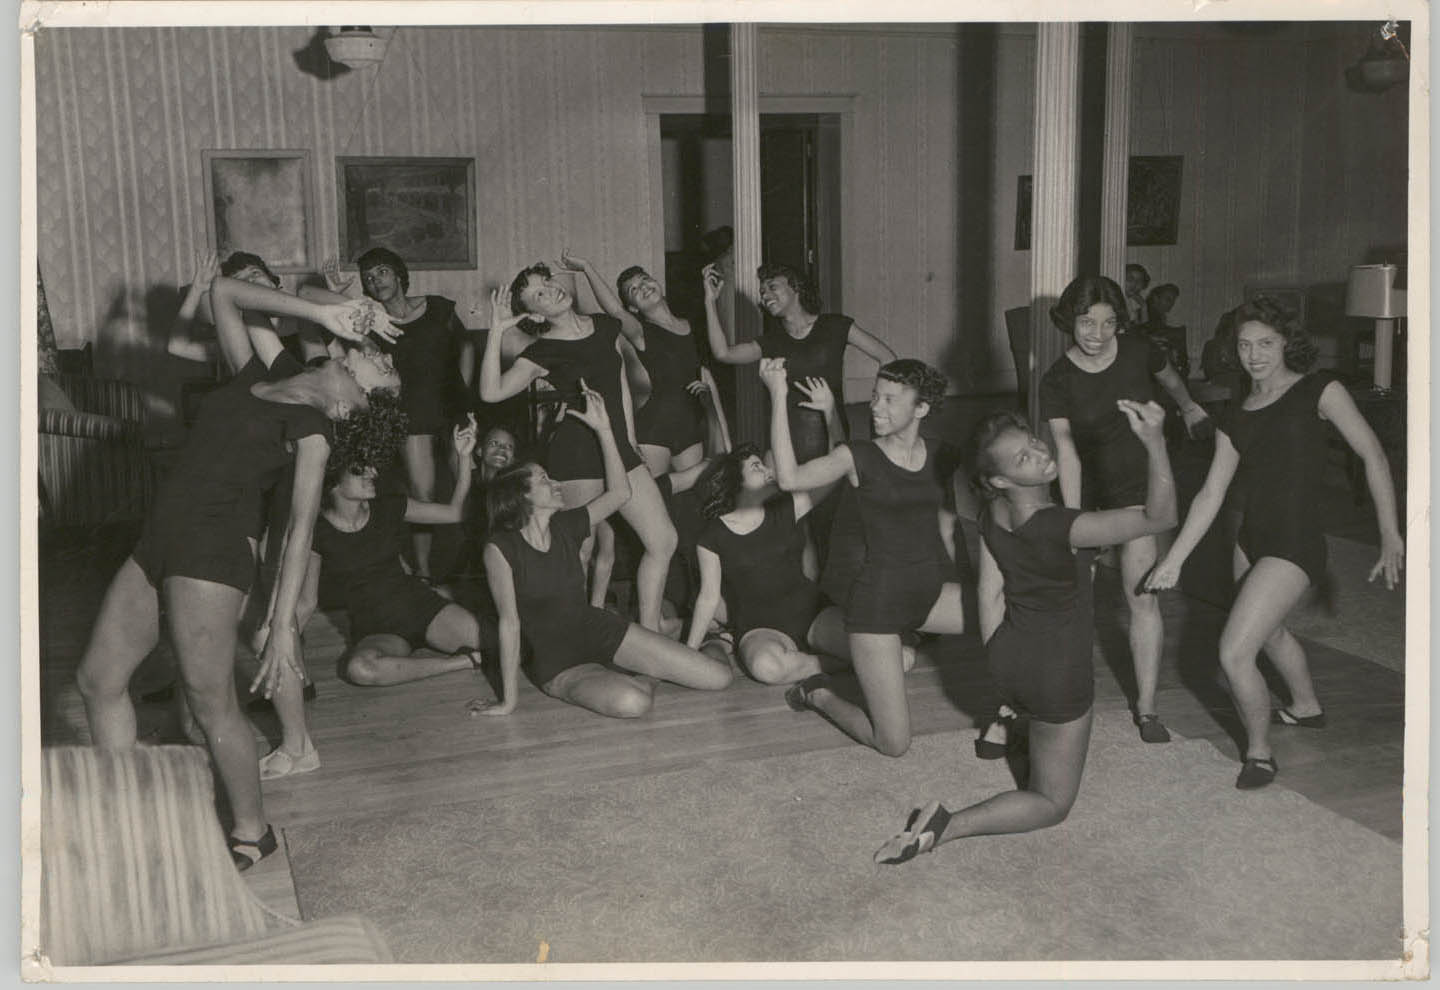 Photograph of Dancers at Talladega College